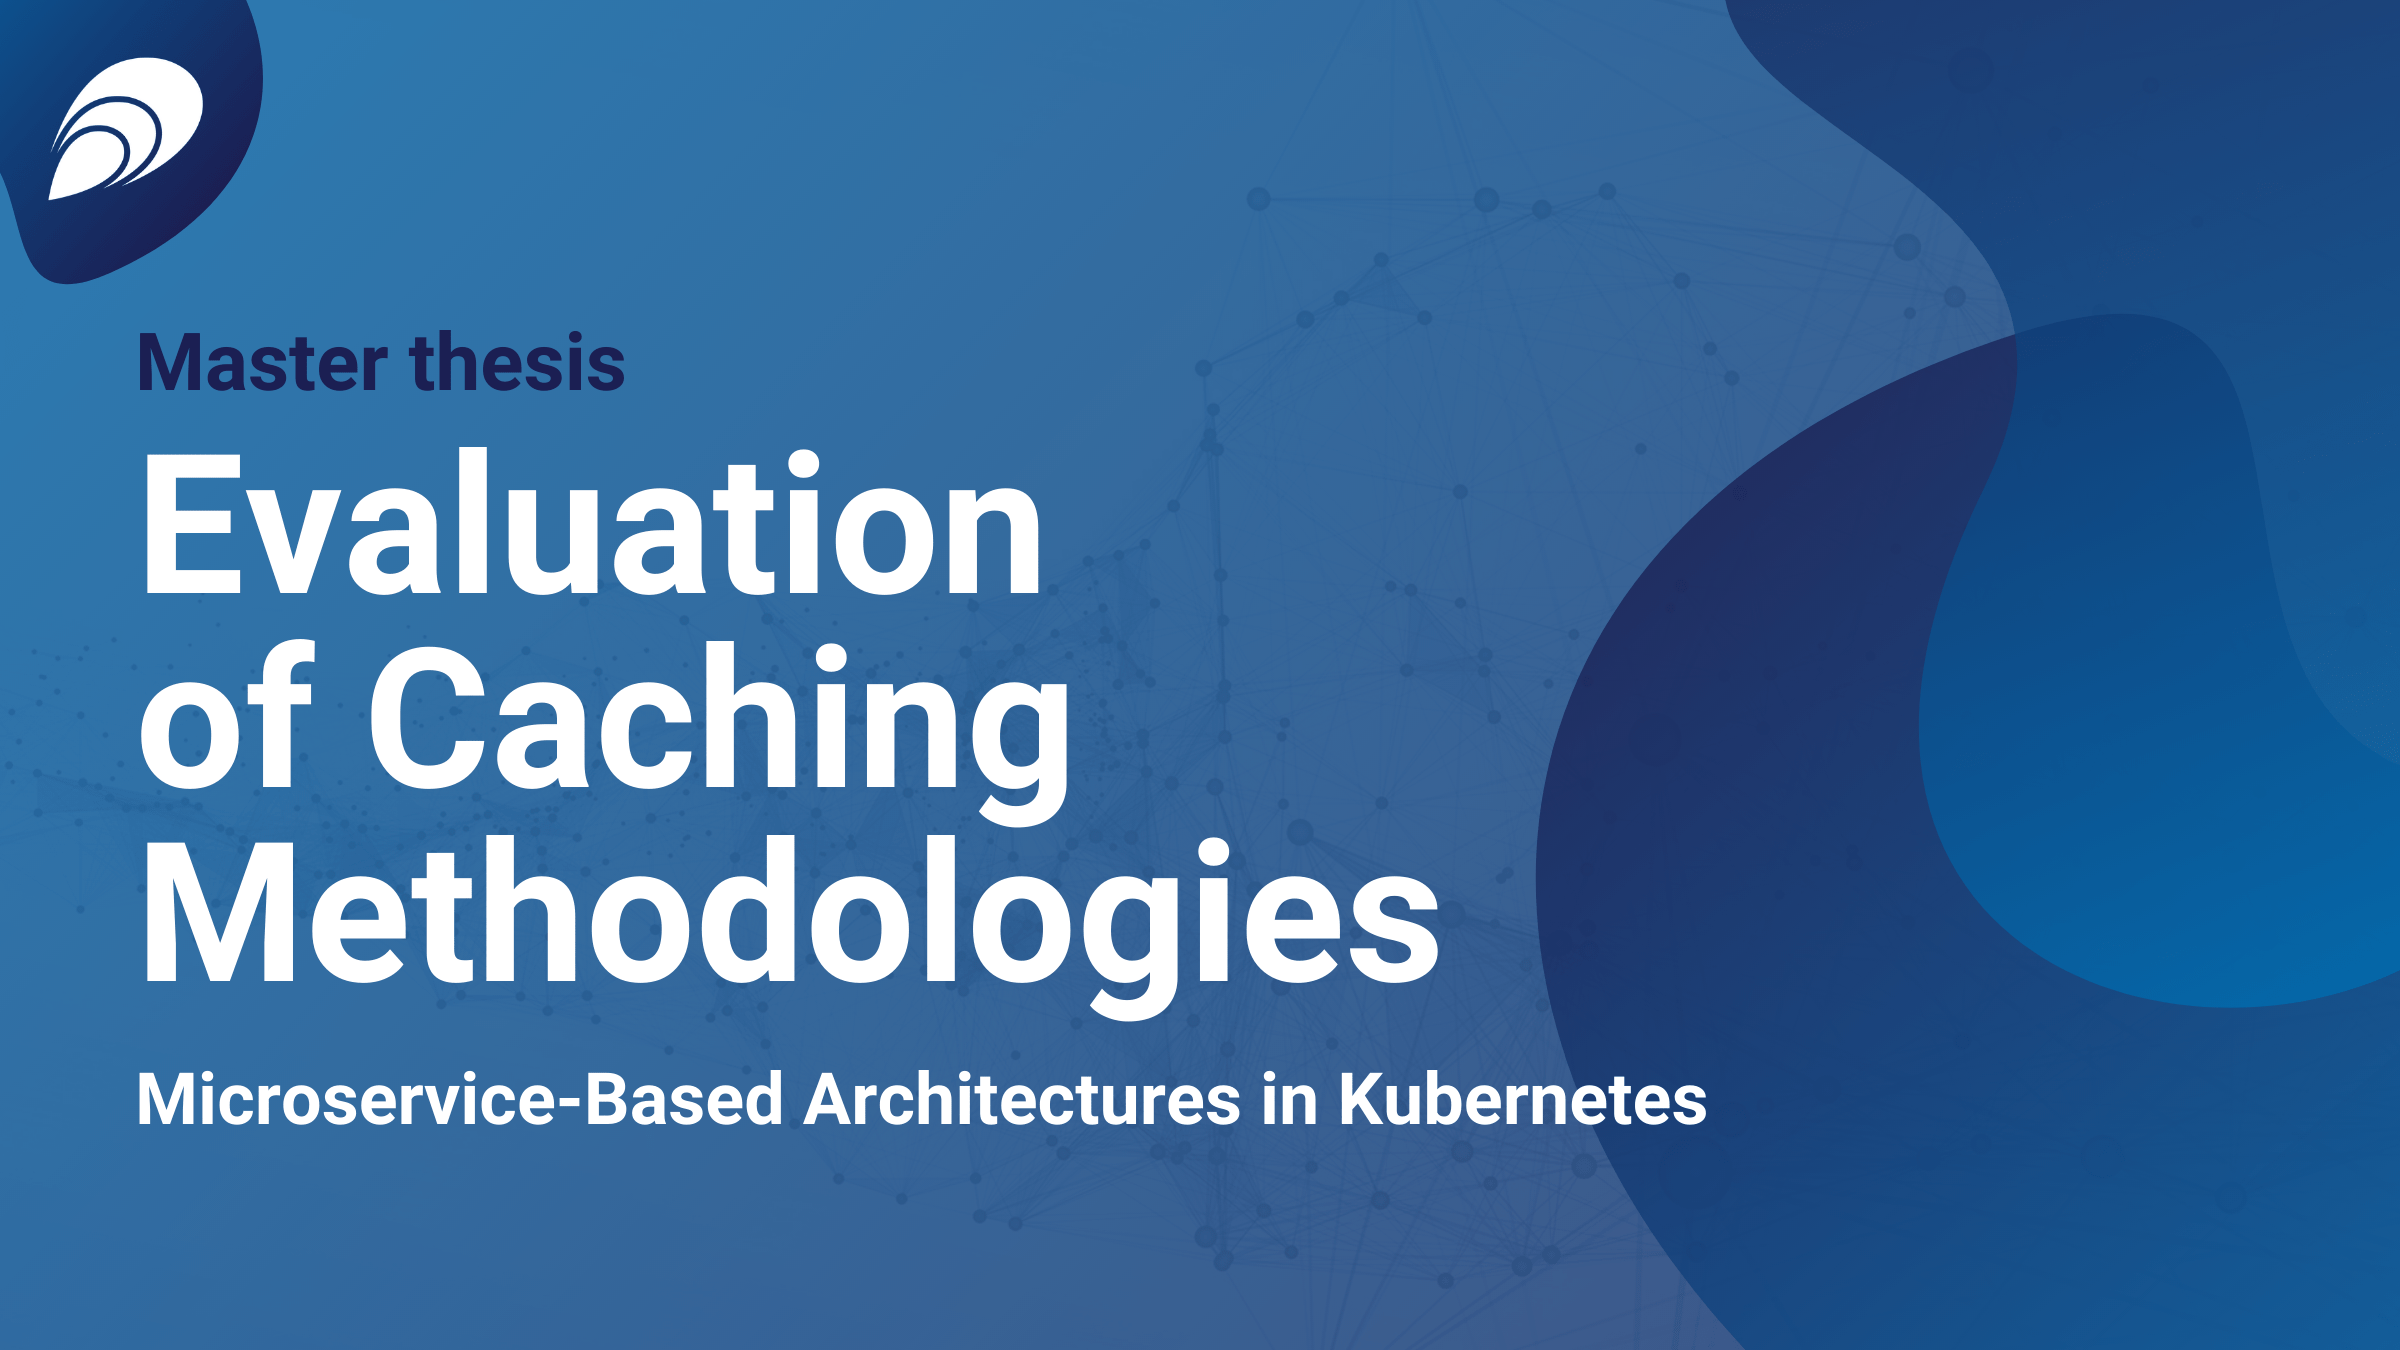 Evaluation of Caching Methodologies for Microservice-Based Architectures in Kubernetes